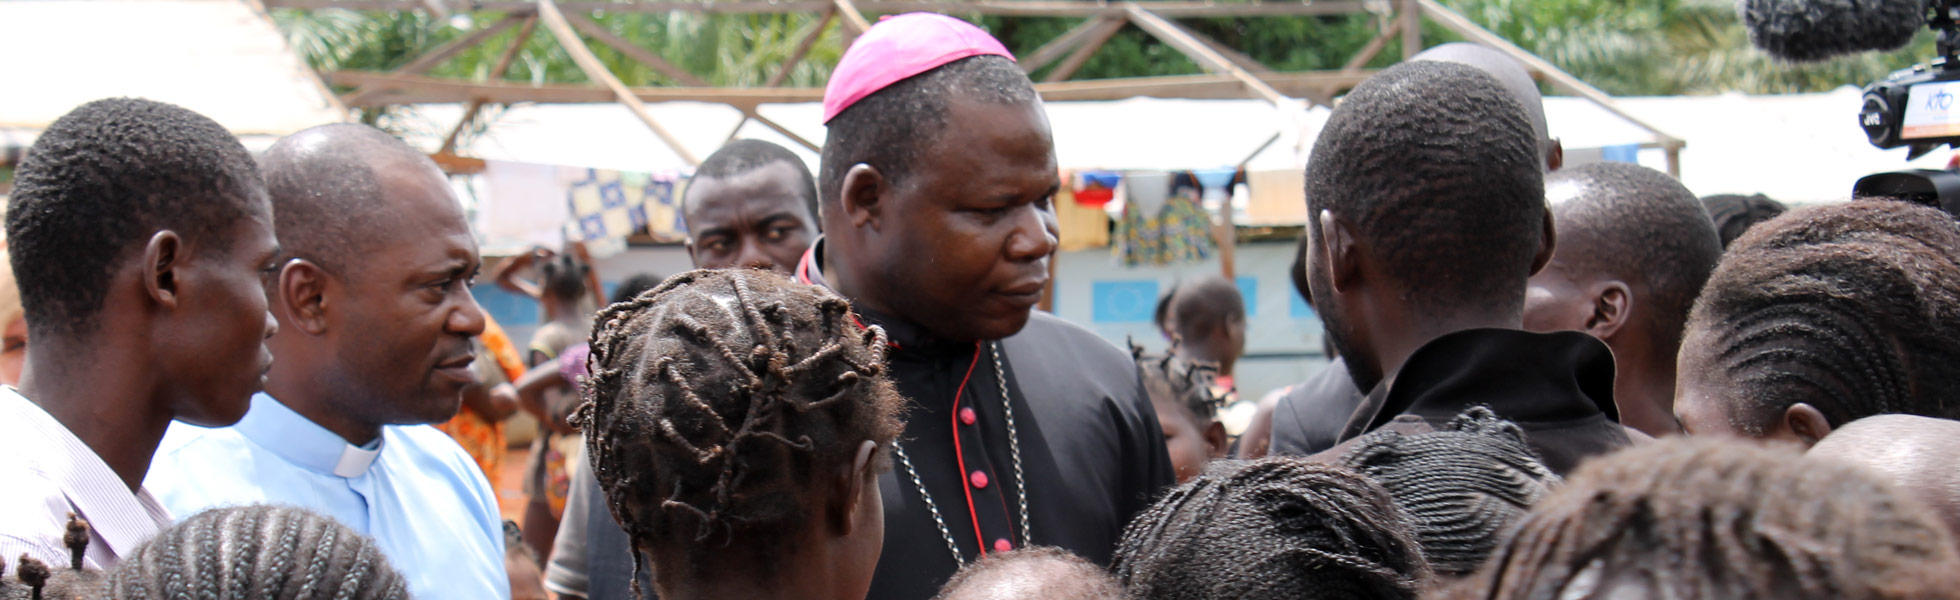 "Central African Republic: ""It was almost like the visit of the Pope"""